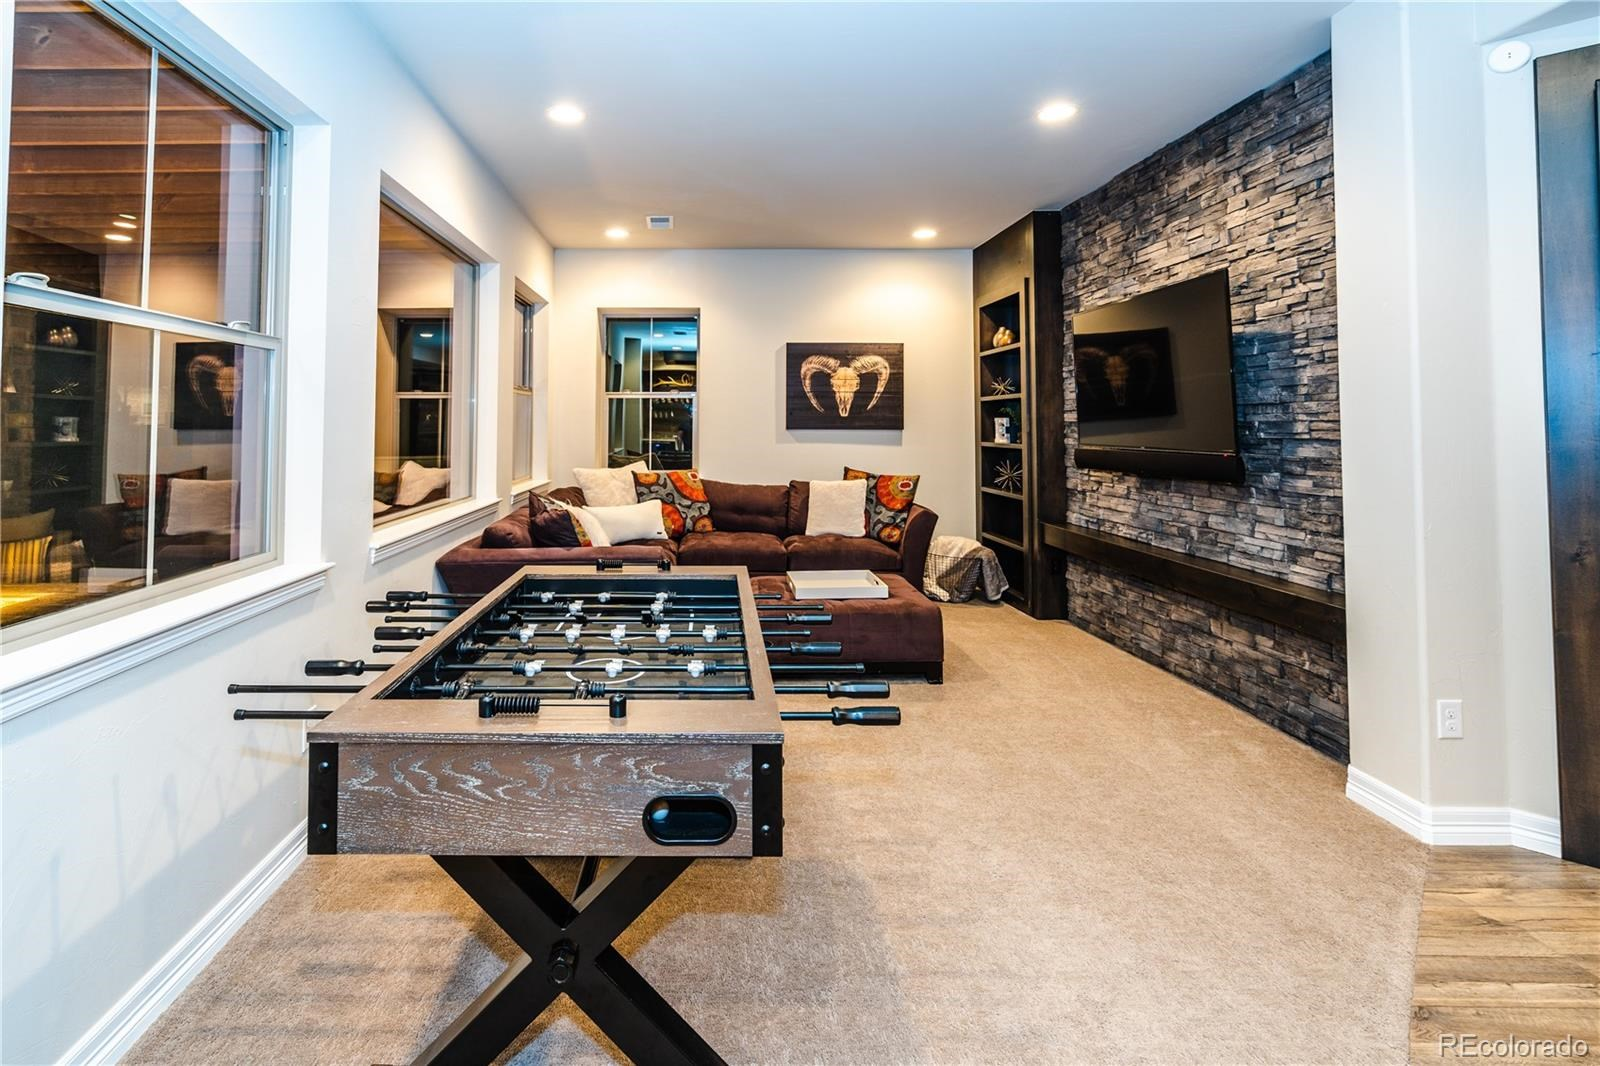 MLS# 2755672 - 18 - 10701 Manorstone Drive, Highlands Ranch, CO 80126